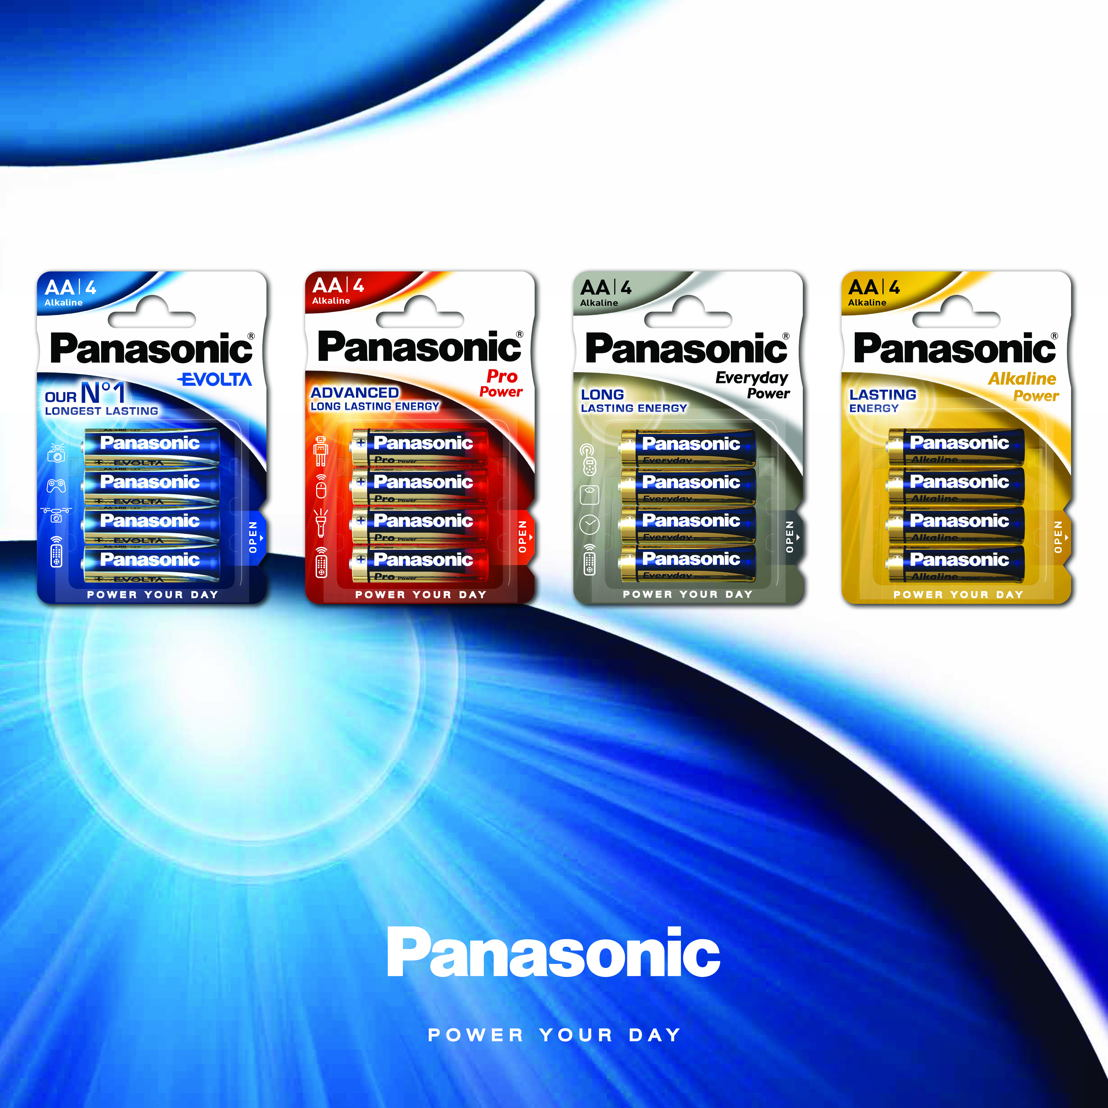 Panasonic - new global designs